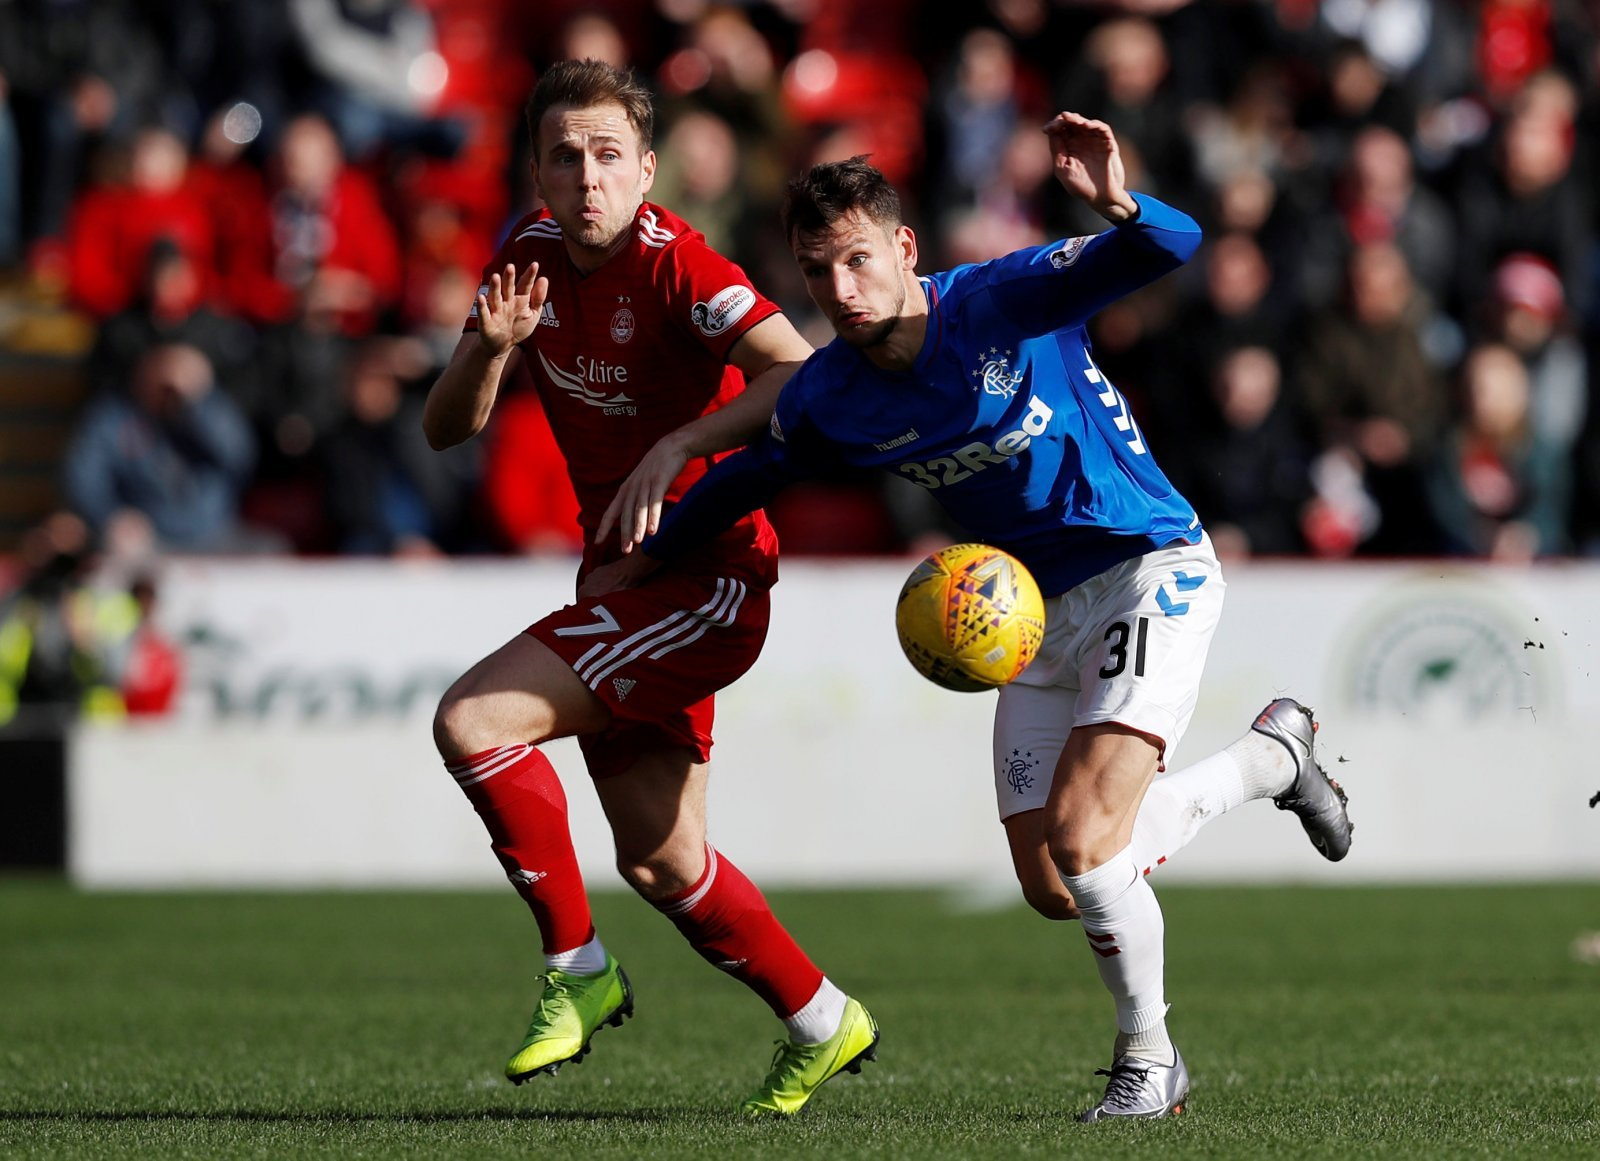 Rangers offer Birmingham City's Greg Stewart a contract to join them in the summer